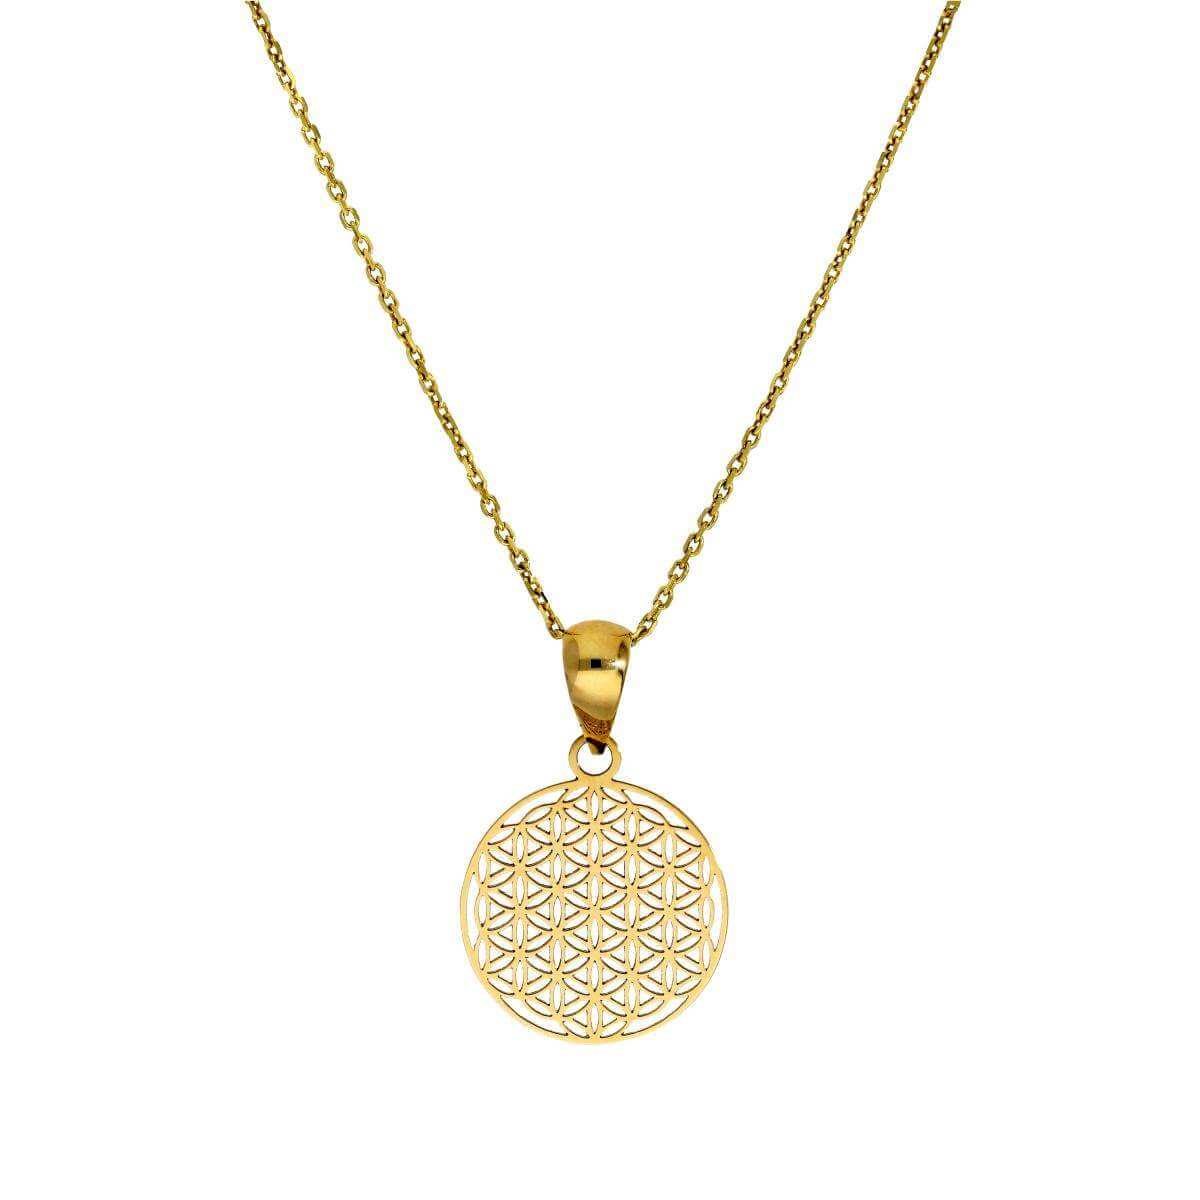 9ct Gold Star Flower of Life Pendant Necklace 16 - 20 Inches